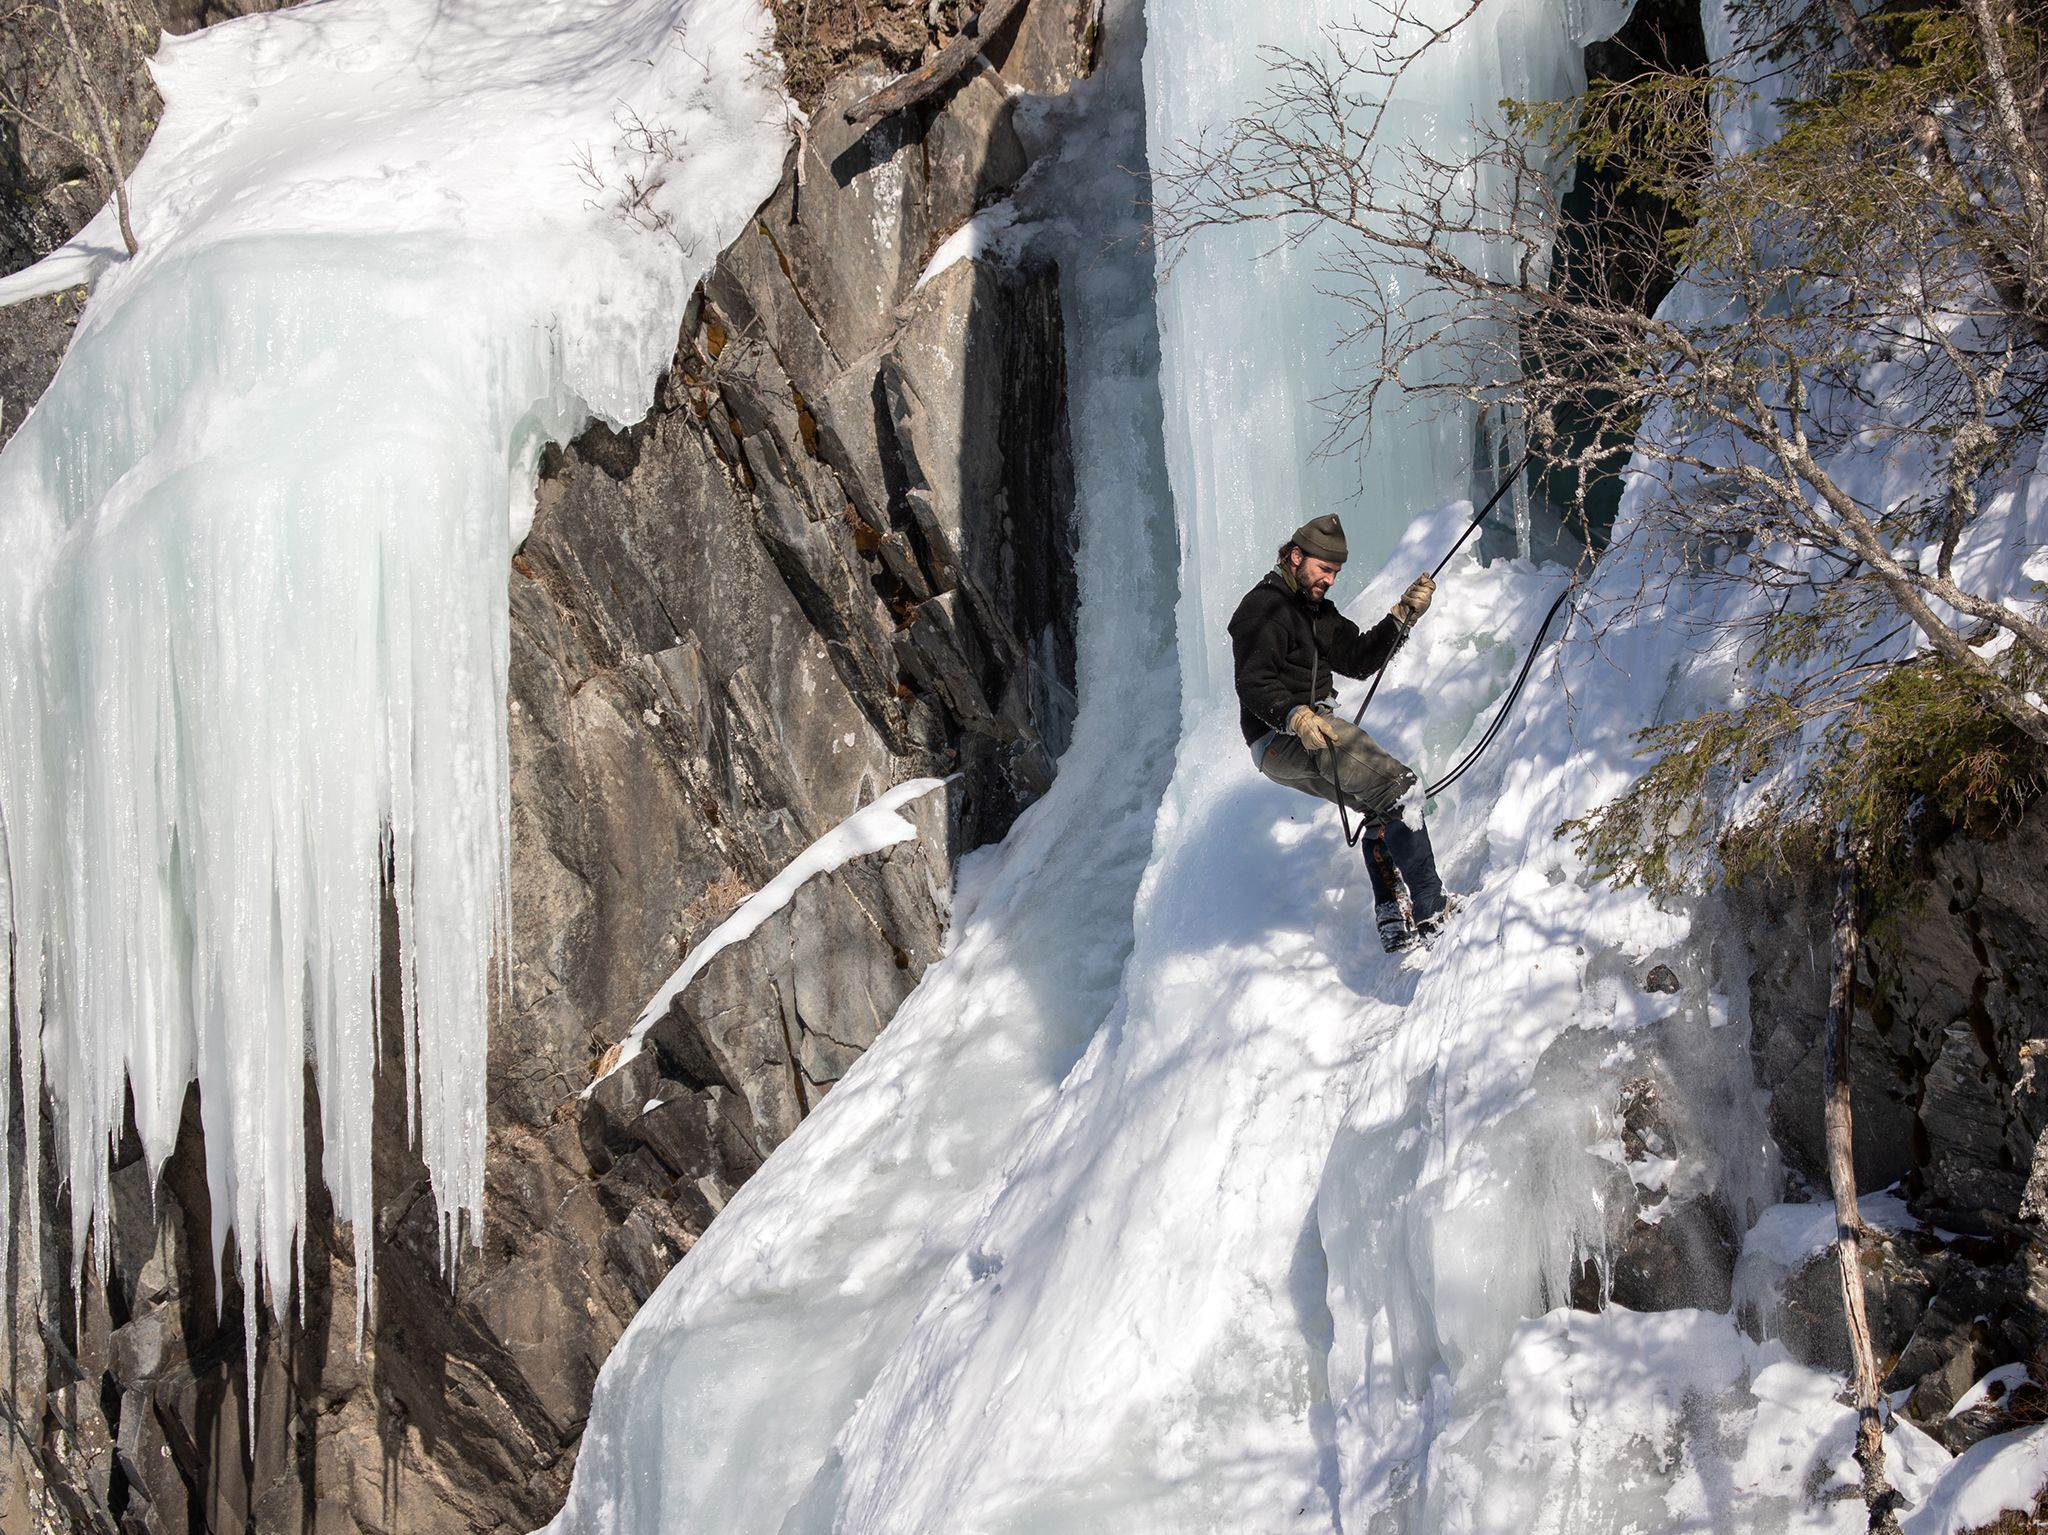 Hazen Audel abseils down an ice cliff in Norway.  This image is from Ultimate Survival WWII. [Photo of the day - نوامبر 2019]